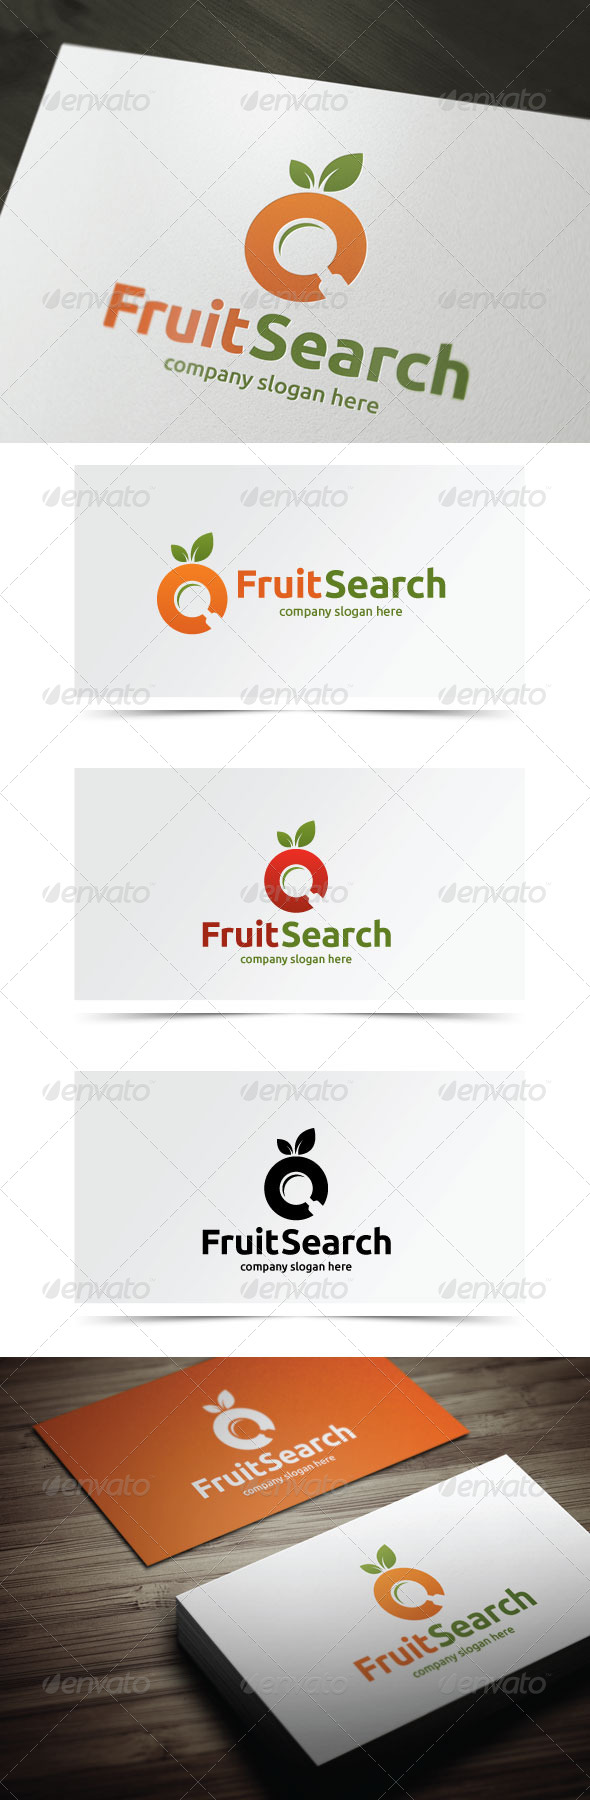 GraphicRiver Fruit Search 5572128